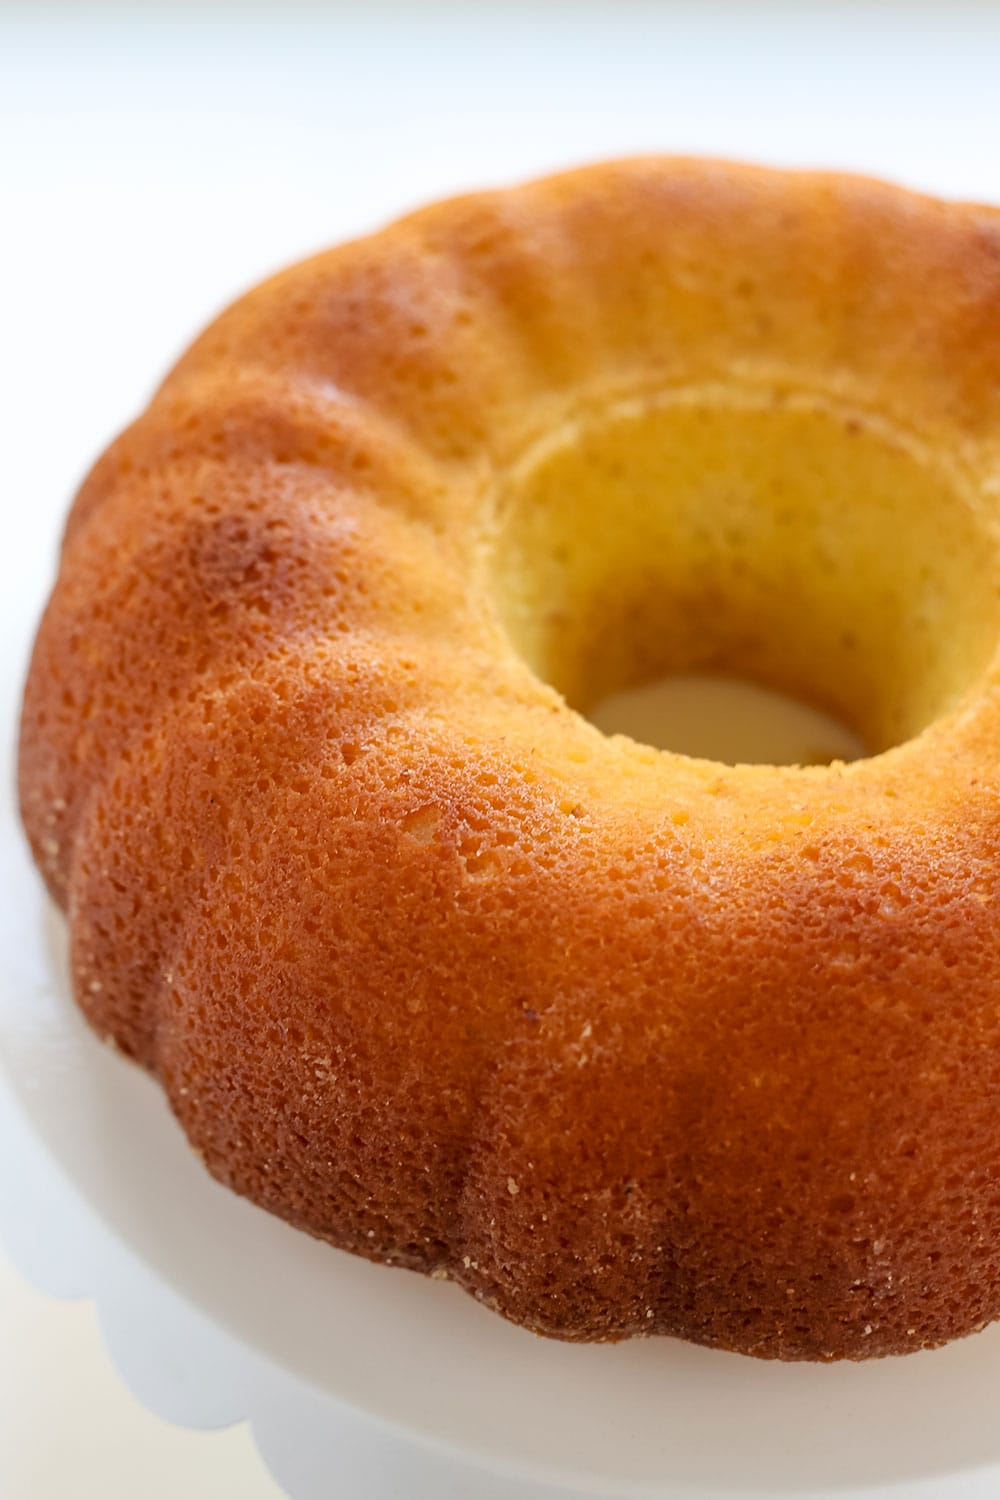 My tips and tricks for How to Prevent Bundt Cake from Sticking, because there's nothing more frustrating than your cake getting ruined because it stuck to the pan!